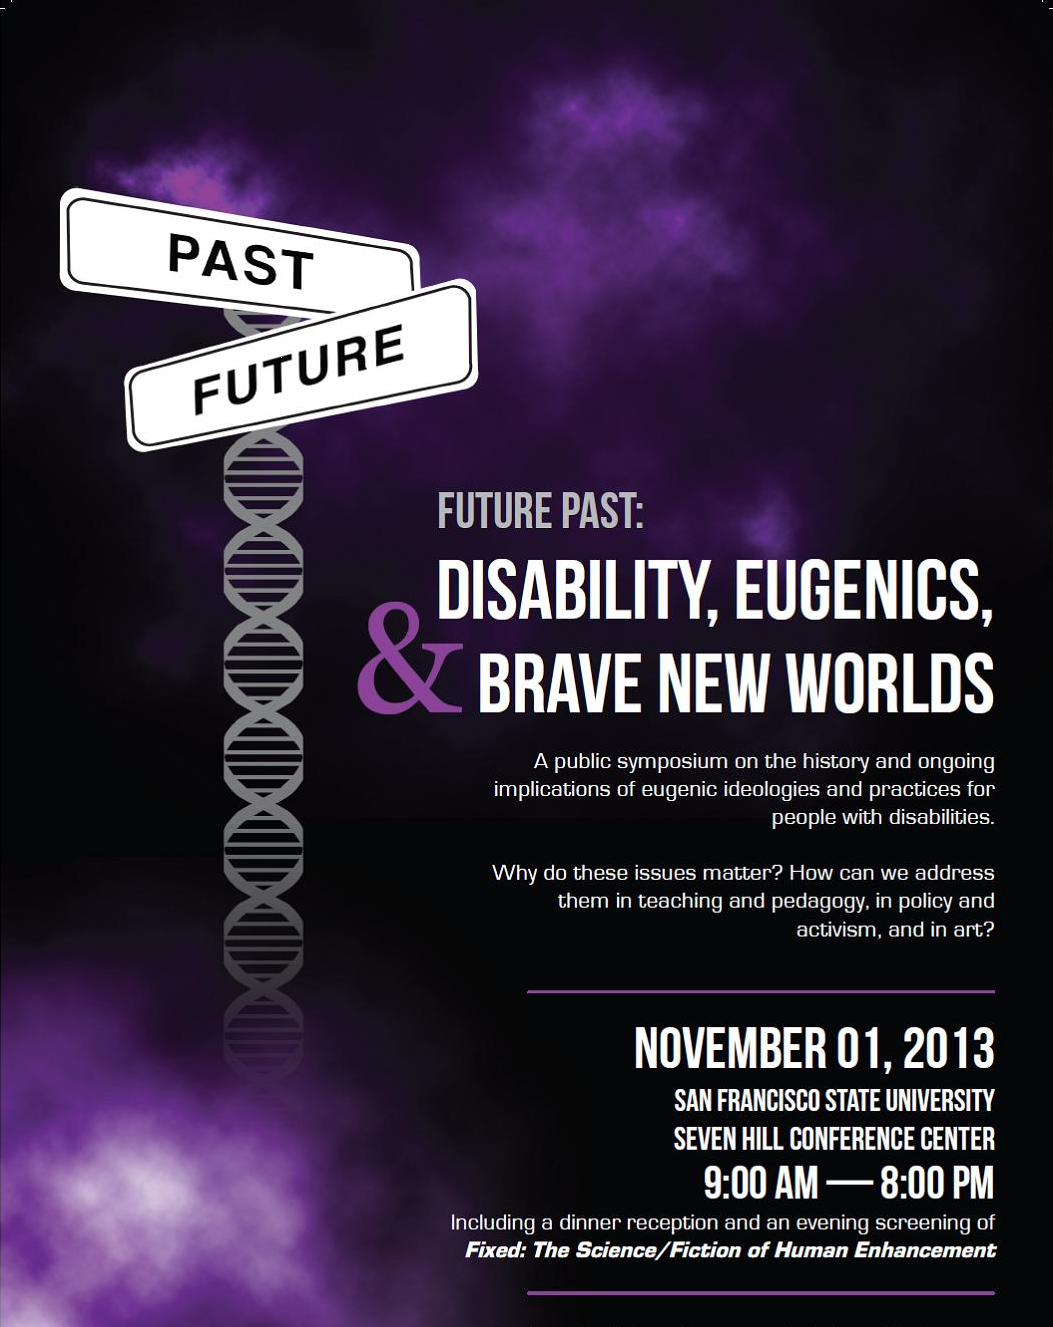 An event poster for Future Past in 2013 is shown, with purple clouds, and a DNA helix forms the base of a signpost with two directions: future and past.